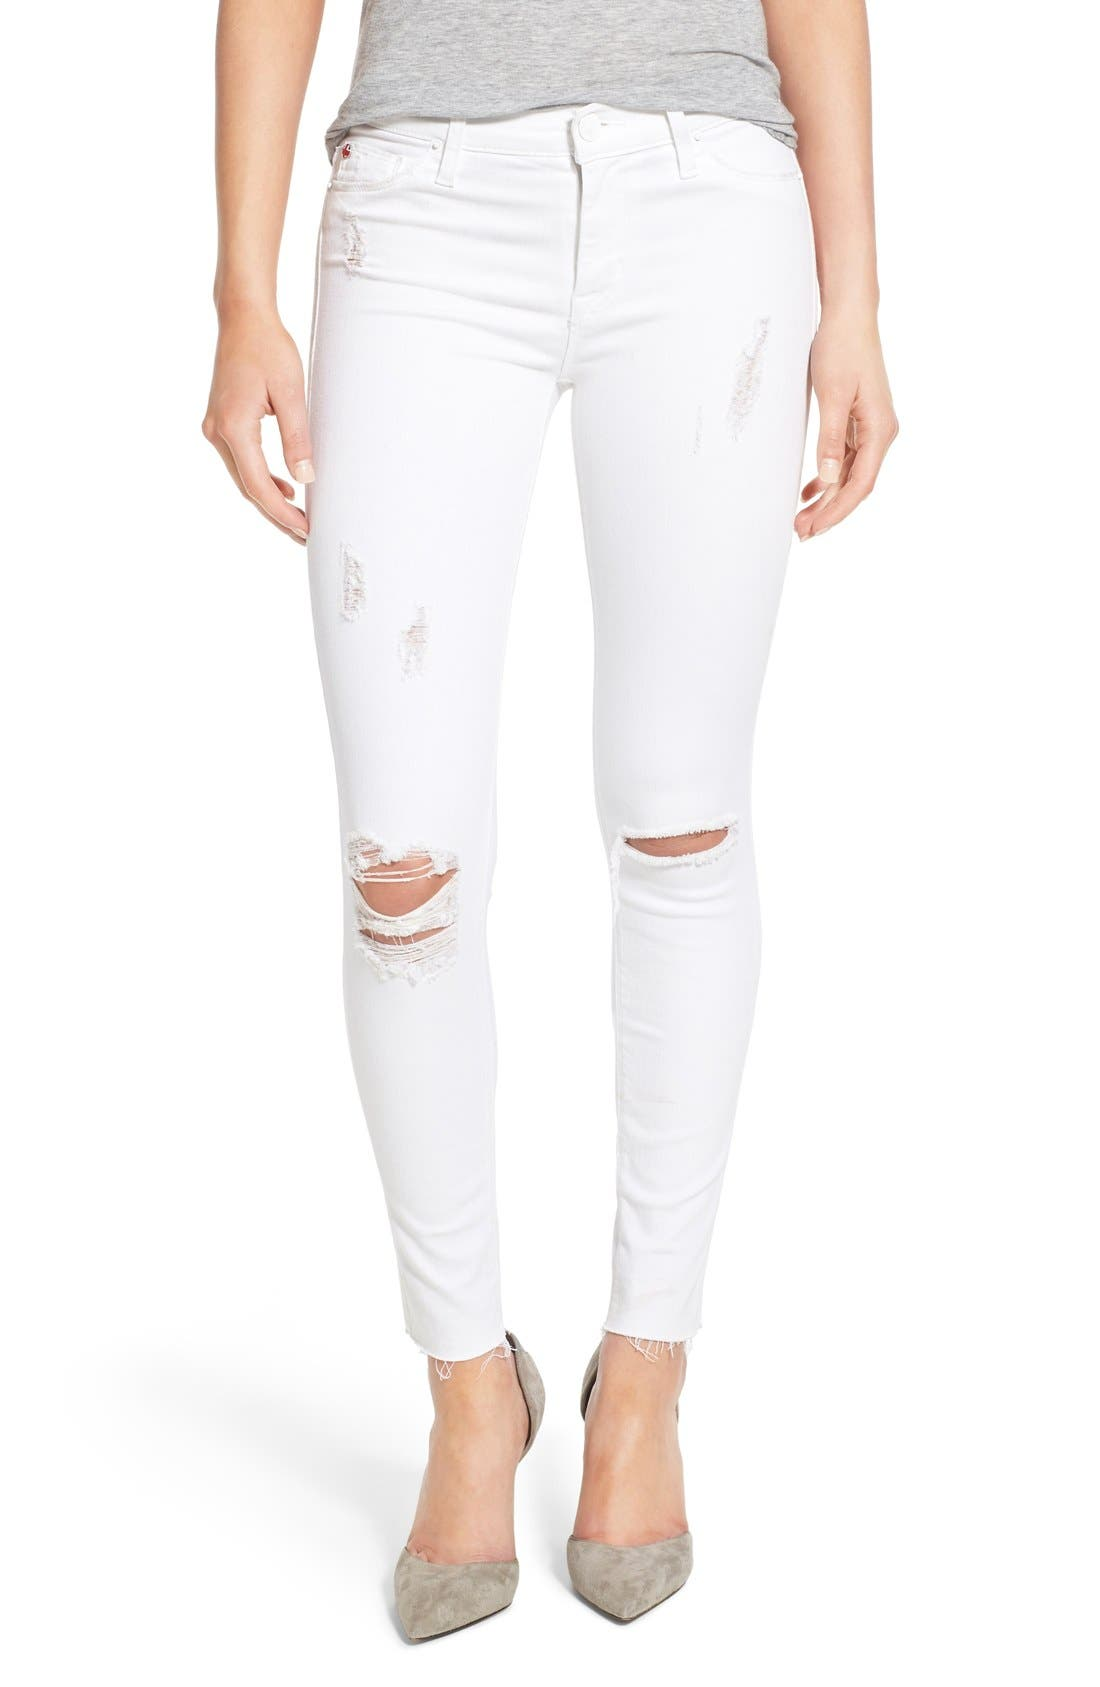 Alternate Image 1 Selected - Hudson Jeans 'Nico' Mid Rise Distressed Ankle Skinny Jeans (Dreamer)